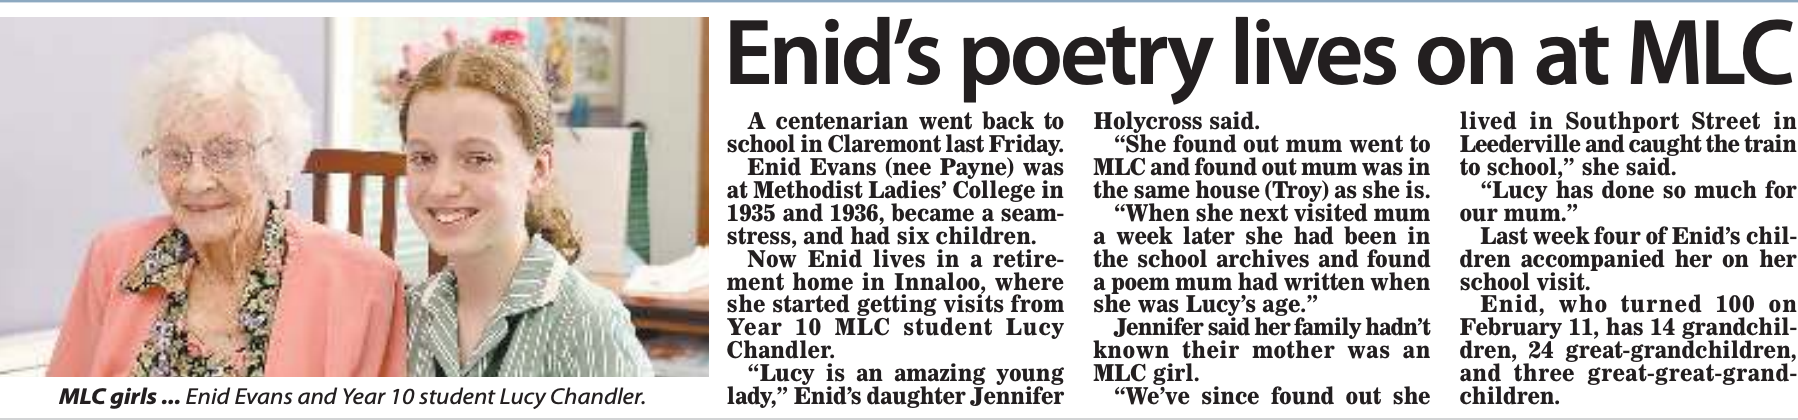 Enid's Poetry Lives on at MLC